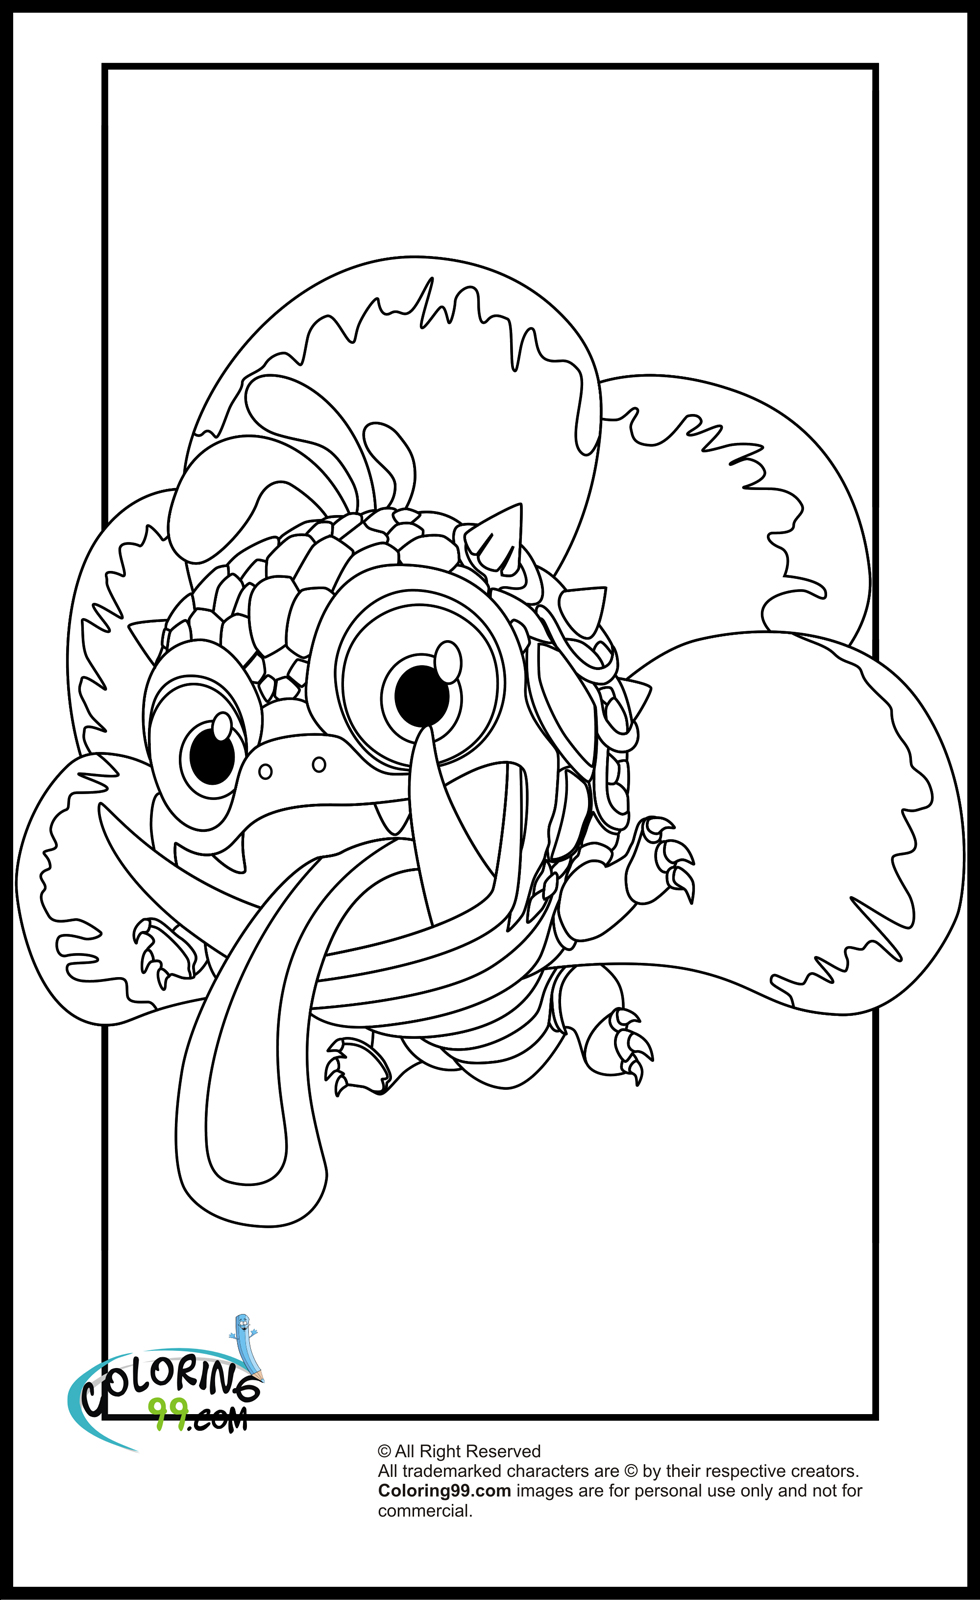 skylanders colouring pages online free printable skylander giants coloring pages for kids skylanders colouring online pages